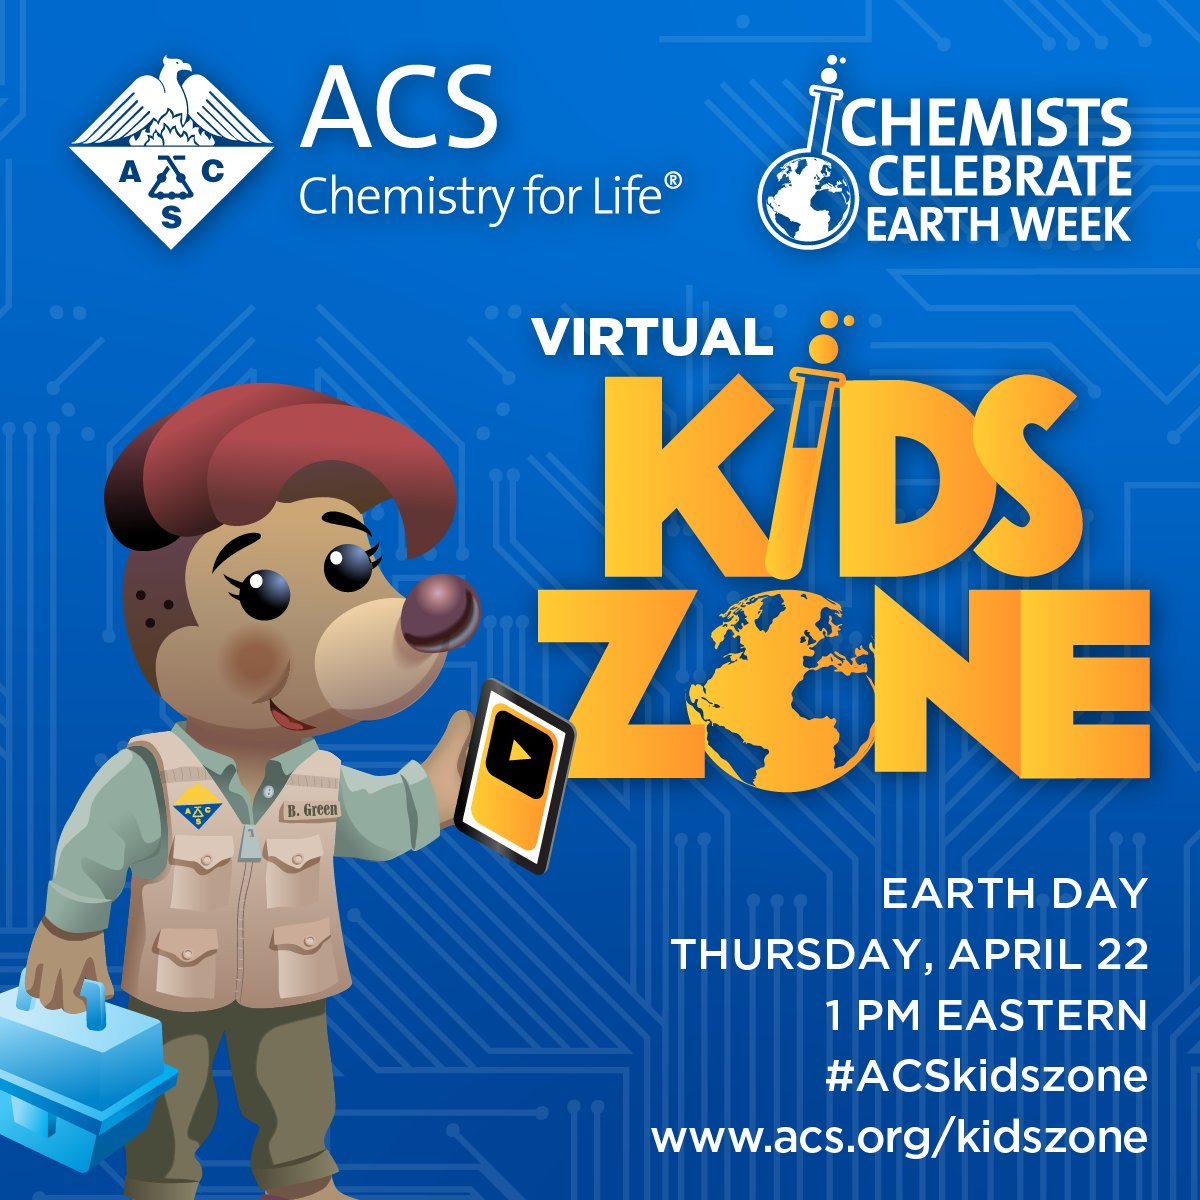 "test Twitter Media - What are you doing on April 22?  #CCEW2021 Join #chemists virtually  #ACSKidsZone ""Reducing Our Footprint with Macromolecular Chemistry."" Register: https://t.co/VjOwz7bvhe! #RyeHighChemClub @ACSChemClubs @NYSMTP #IAMNYACS @ChanaChem It is FREE! @kcmittiga84 @IBChemNinja https://t.co/7rBBvJz5Ud"